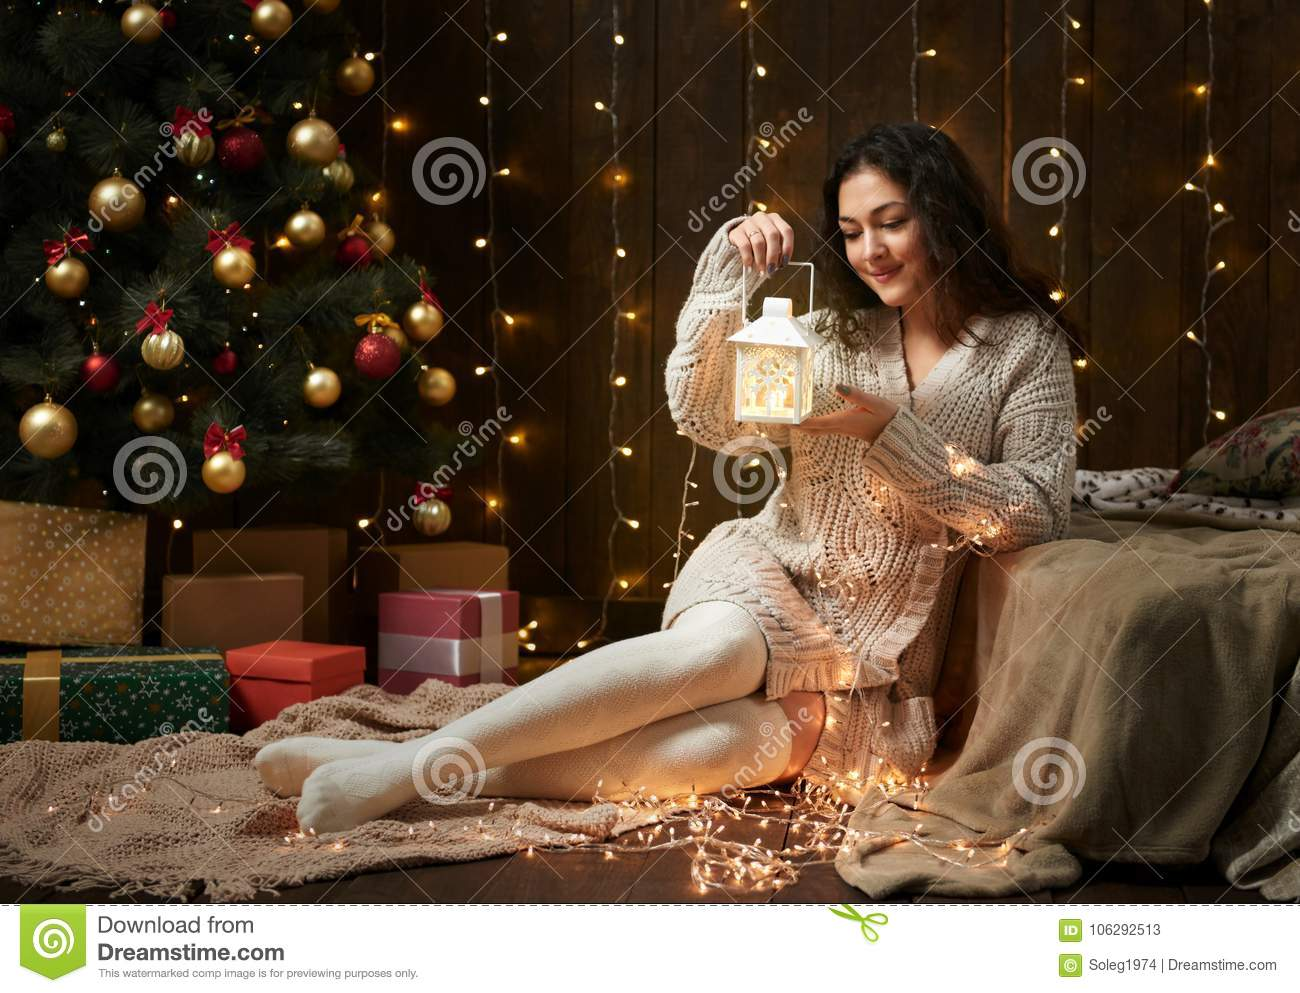 girl portrait in christmas lights and decoration dressed in white